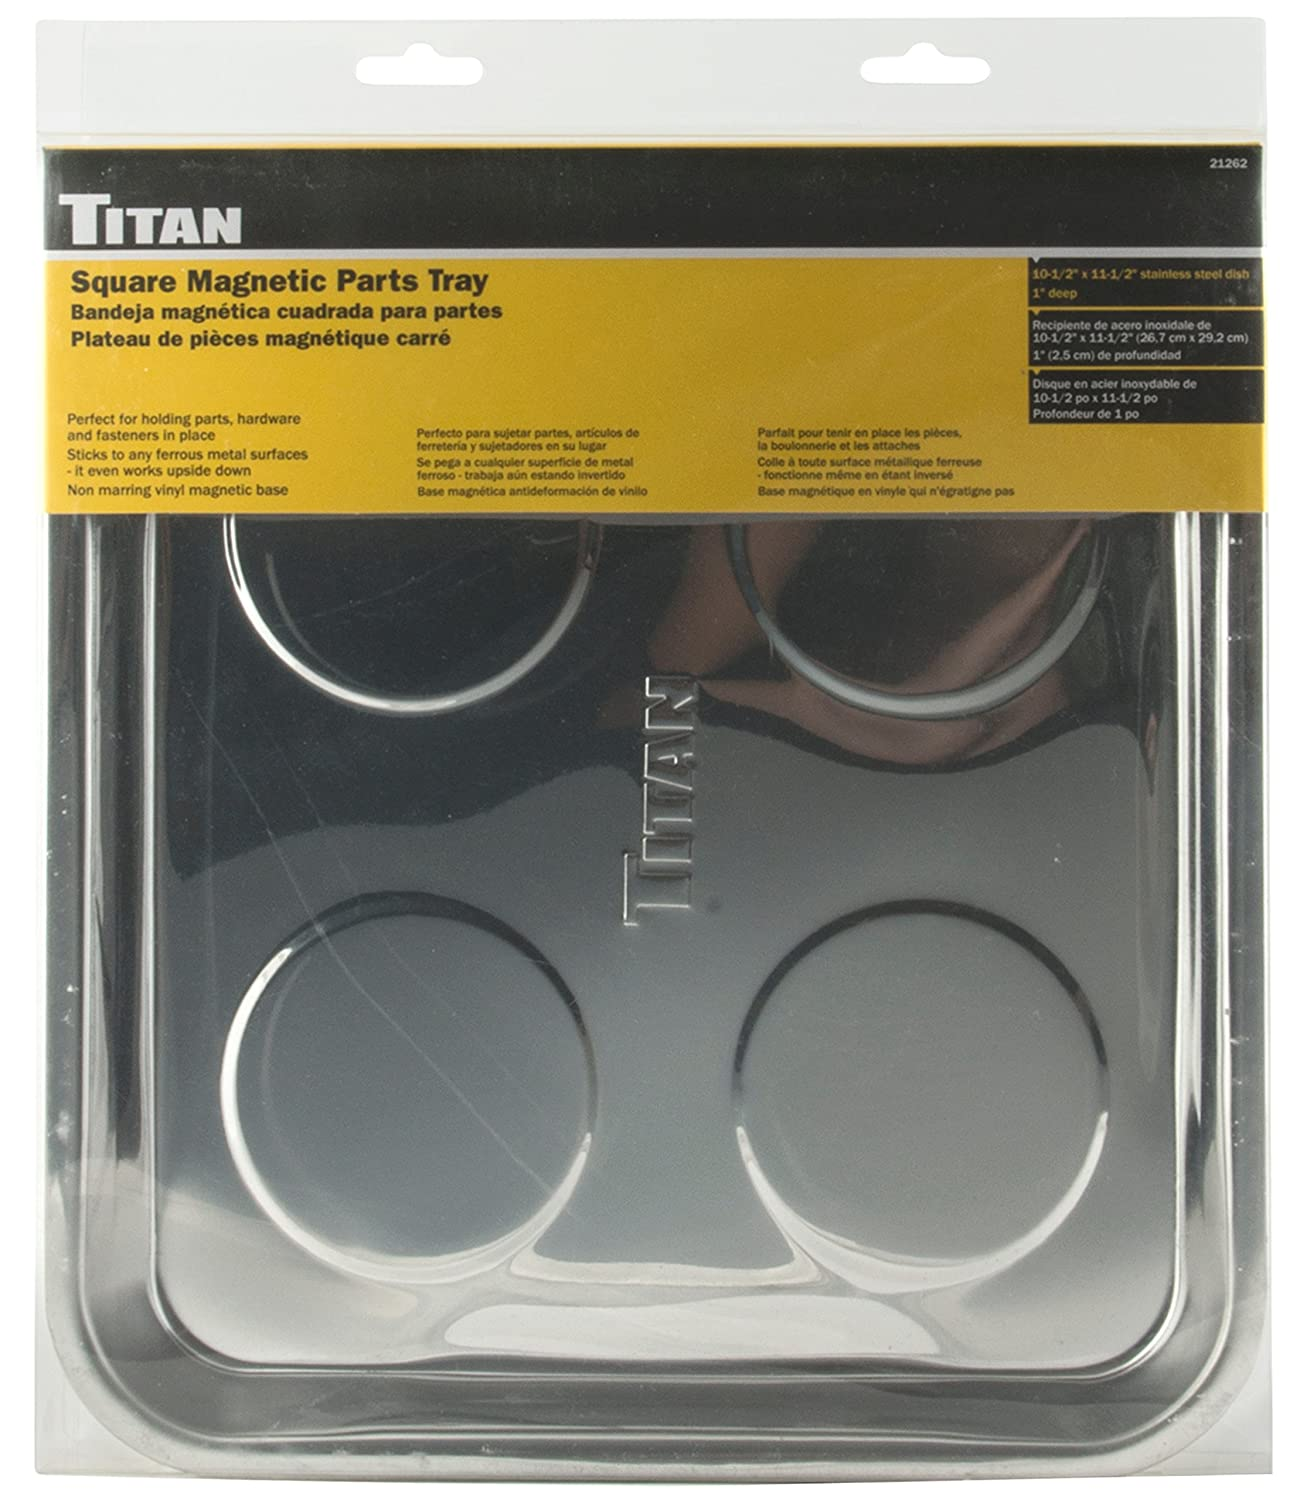 Amazon.com: Titan Tools 21262 Magnetic Parts Tray (10.5